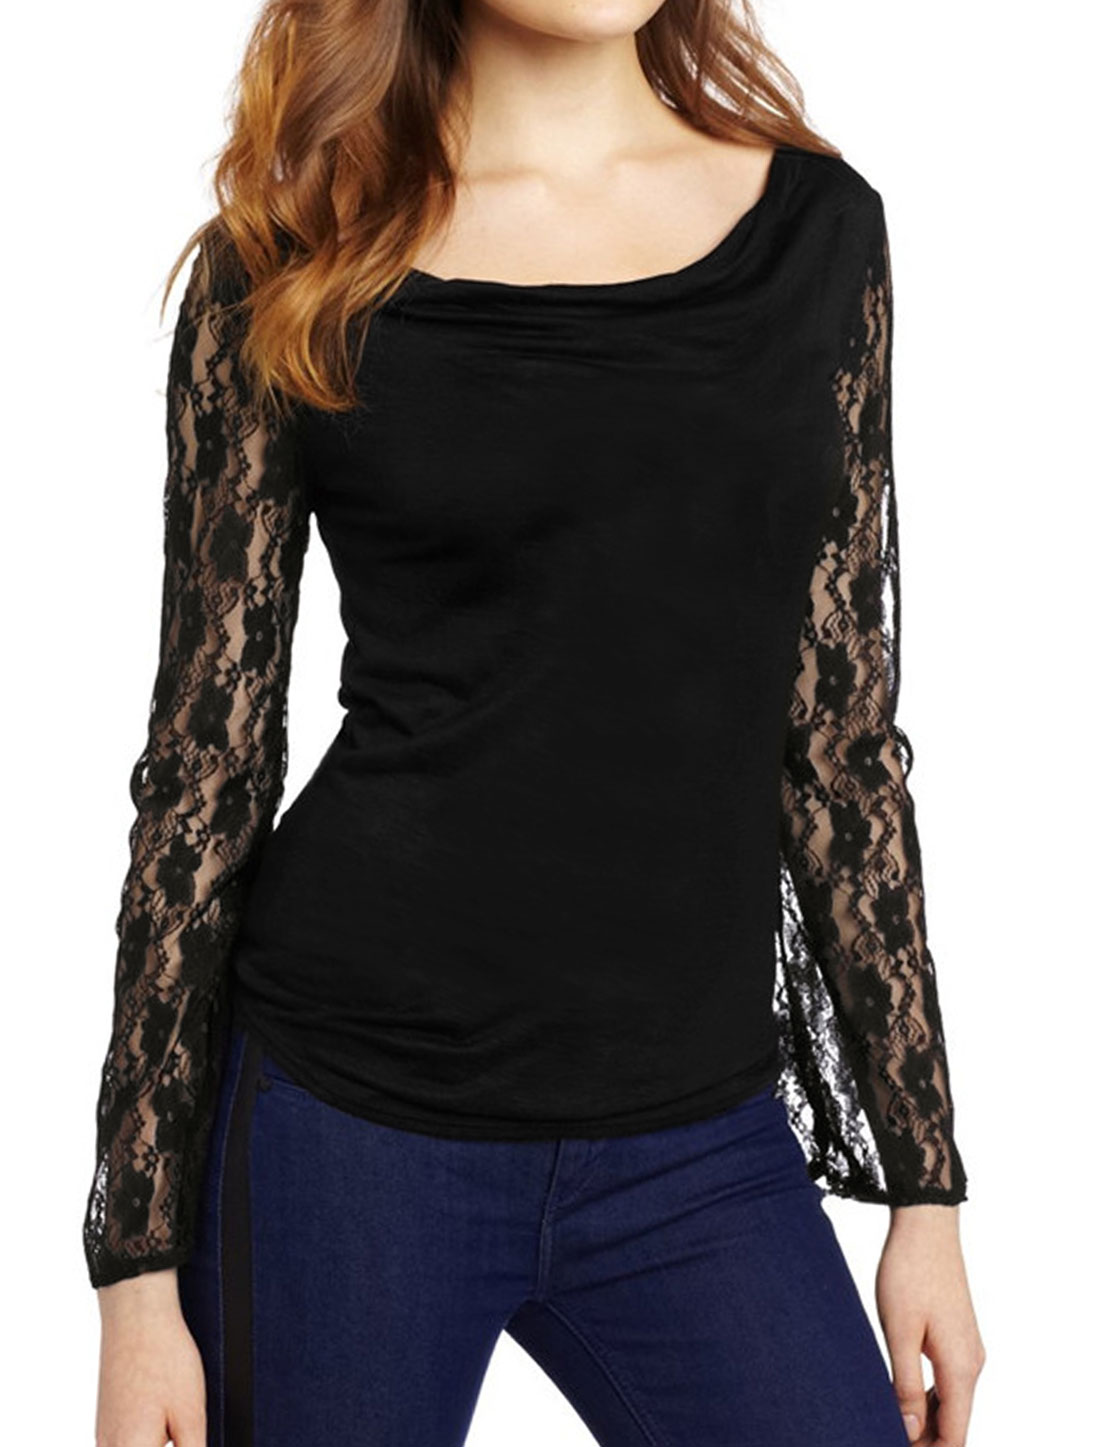 Women Cowl Neck Floral Lace Long Sleeves Slim Fit Top Black M